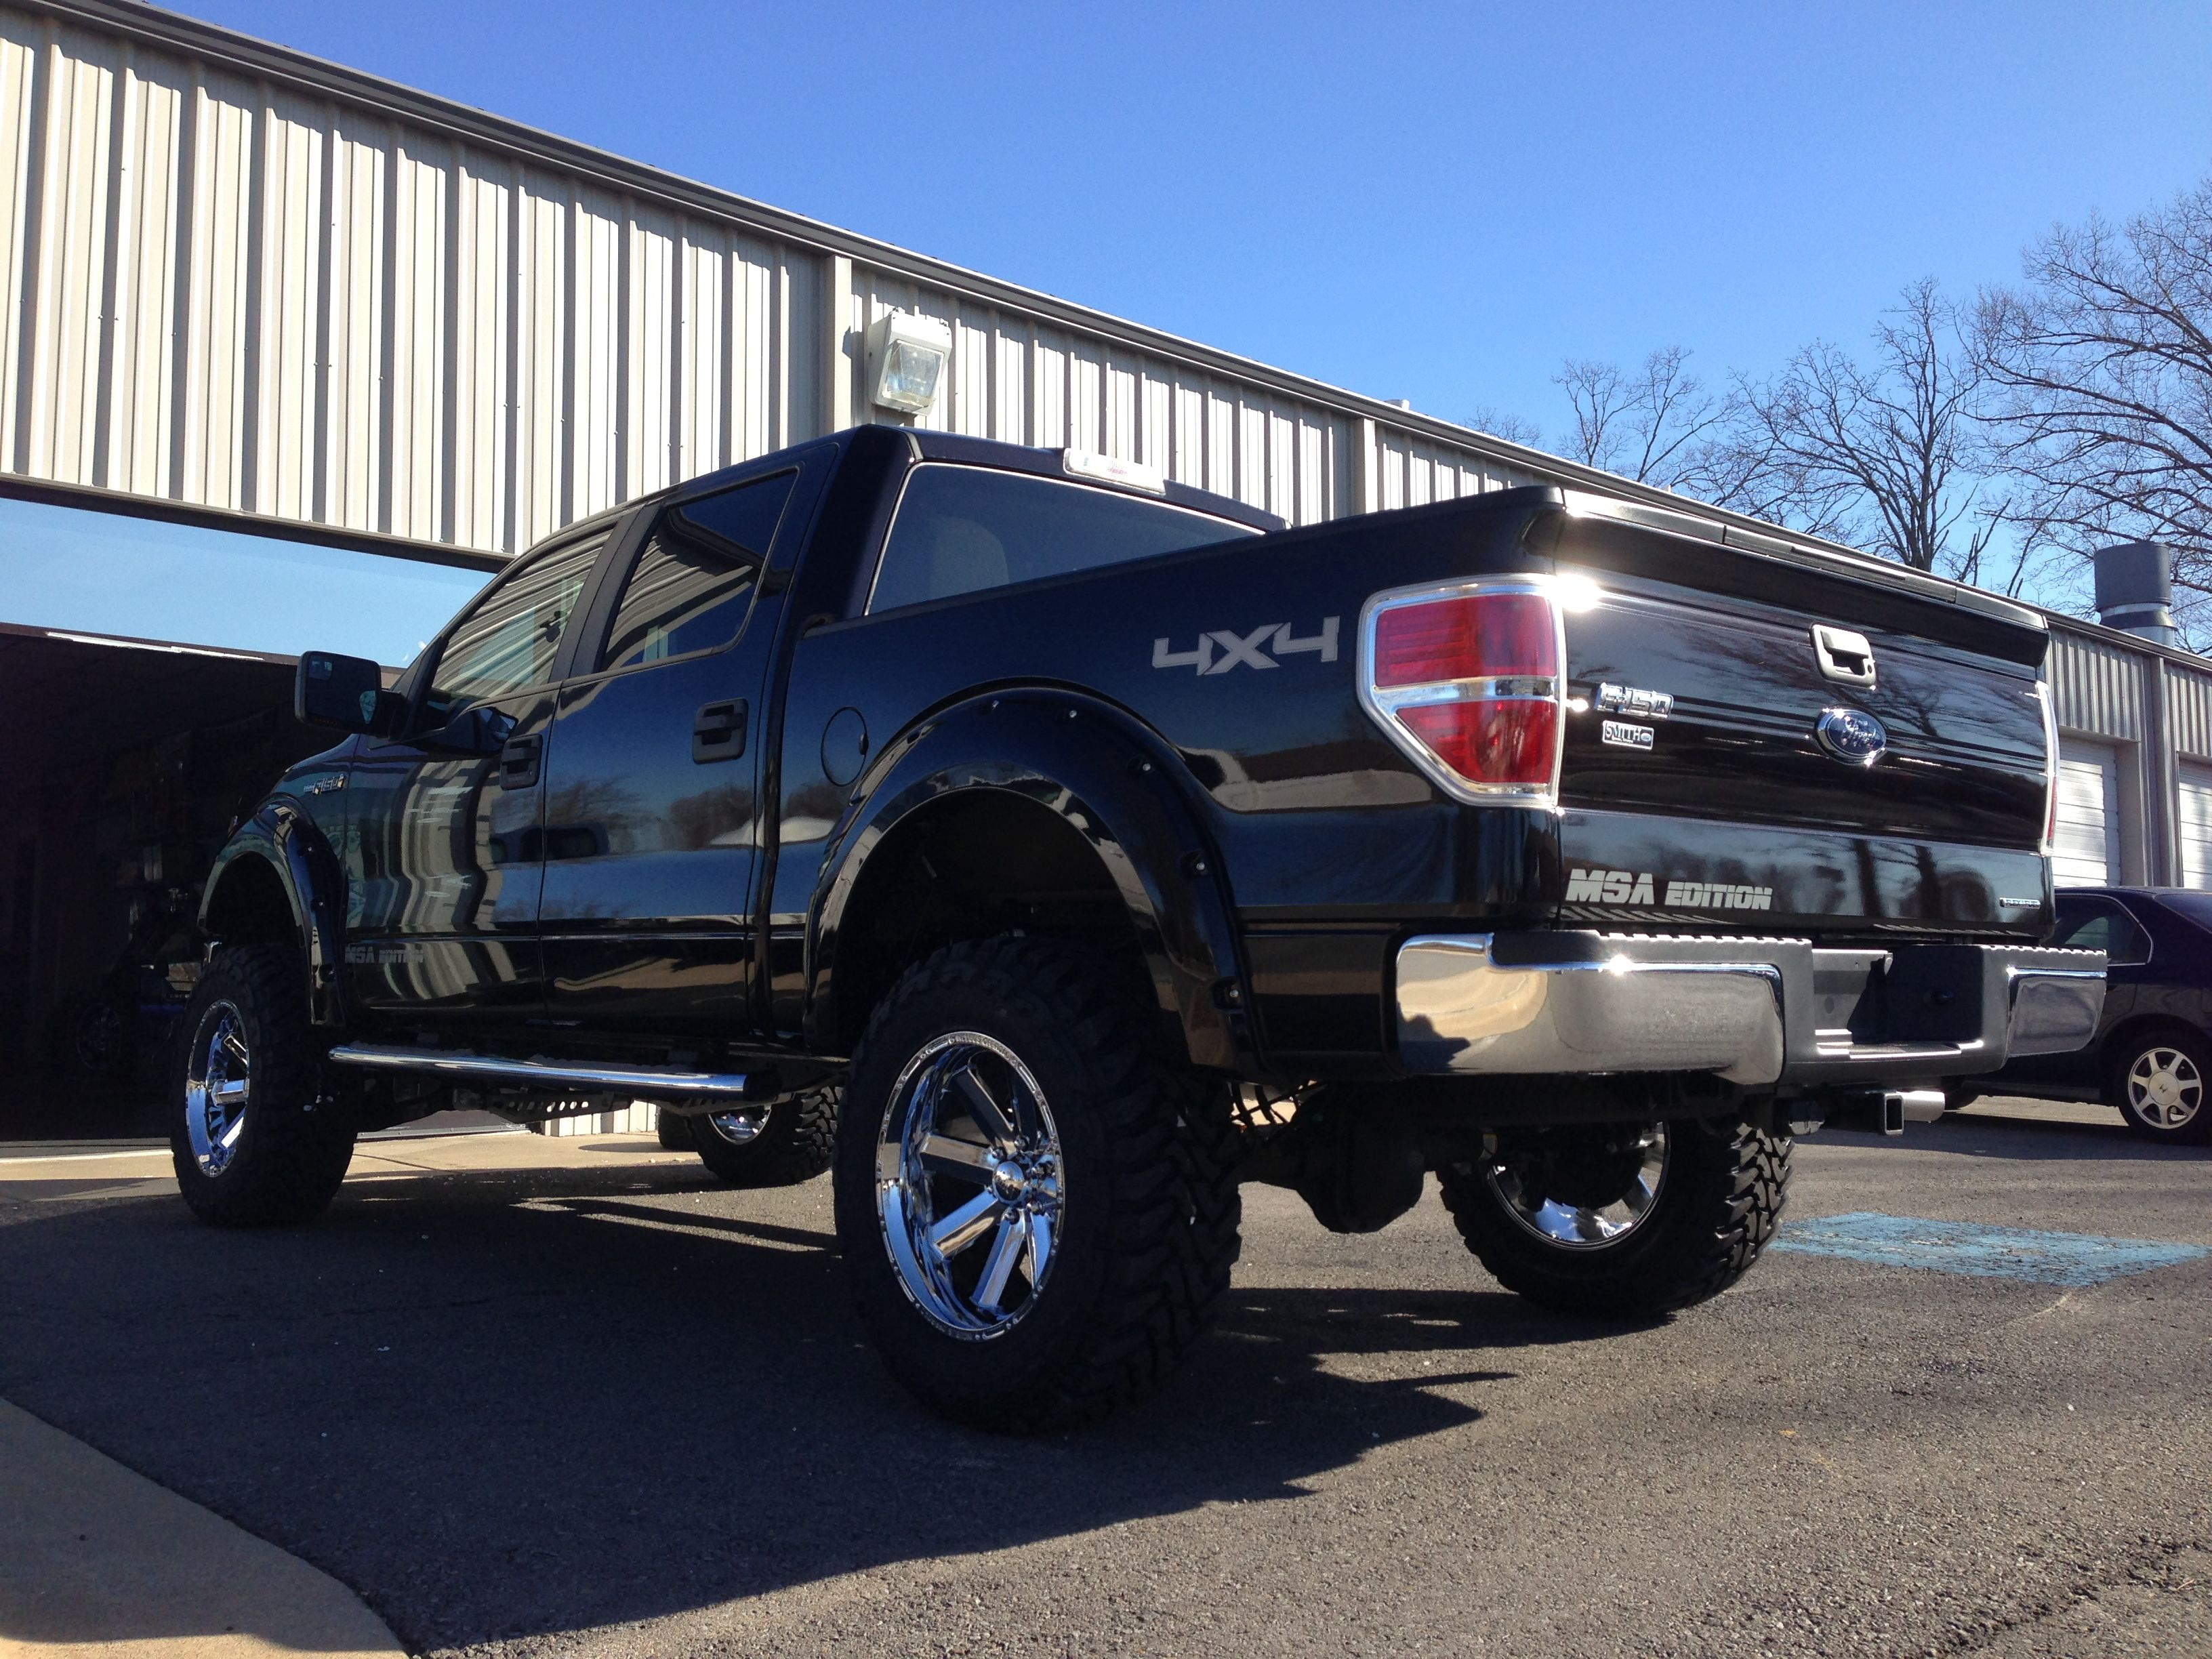 """2013 MSA Edition Kodiak Brown F150 - 6.5"""" McGaughy's lift, paint matched Bushwhacker pocketed fender flares, 20"""" Incubus off road wheels, 35x12.50 R20 Toyo Open Country MT, heated leather seats, and tint."""